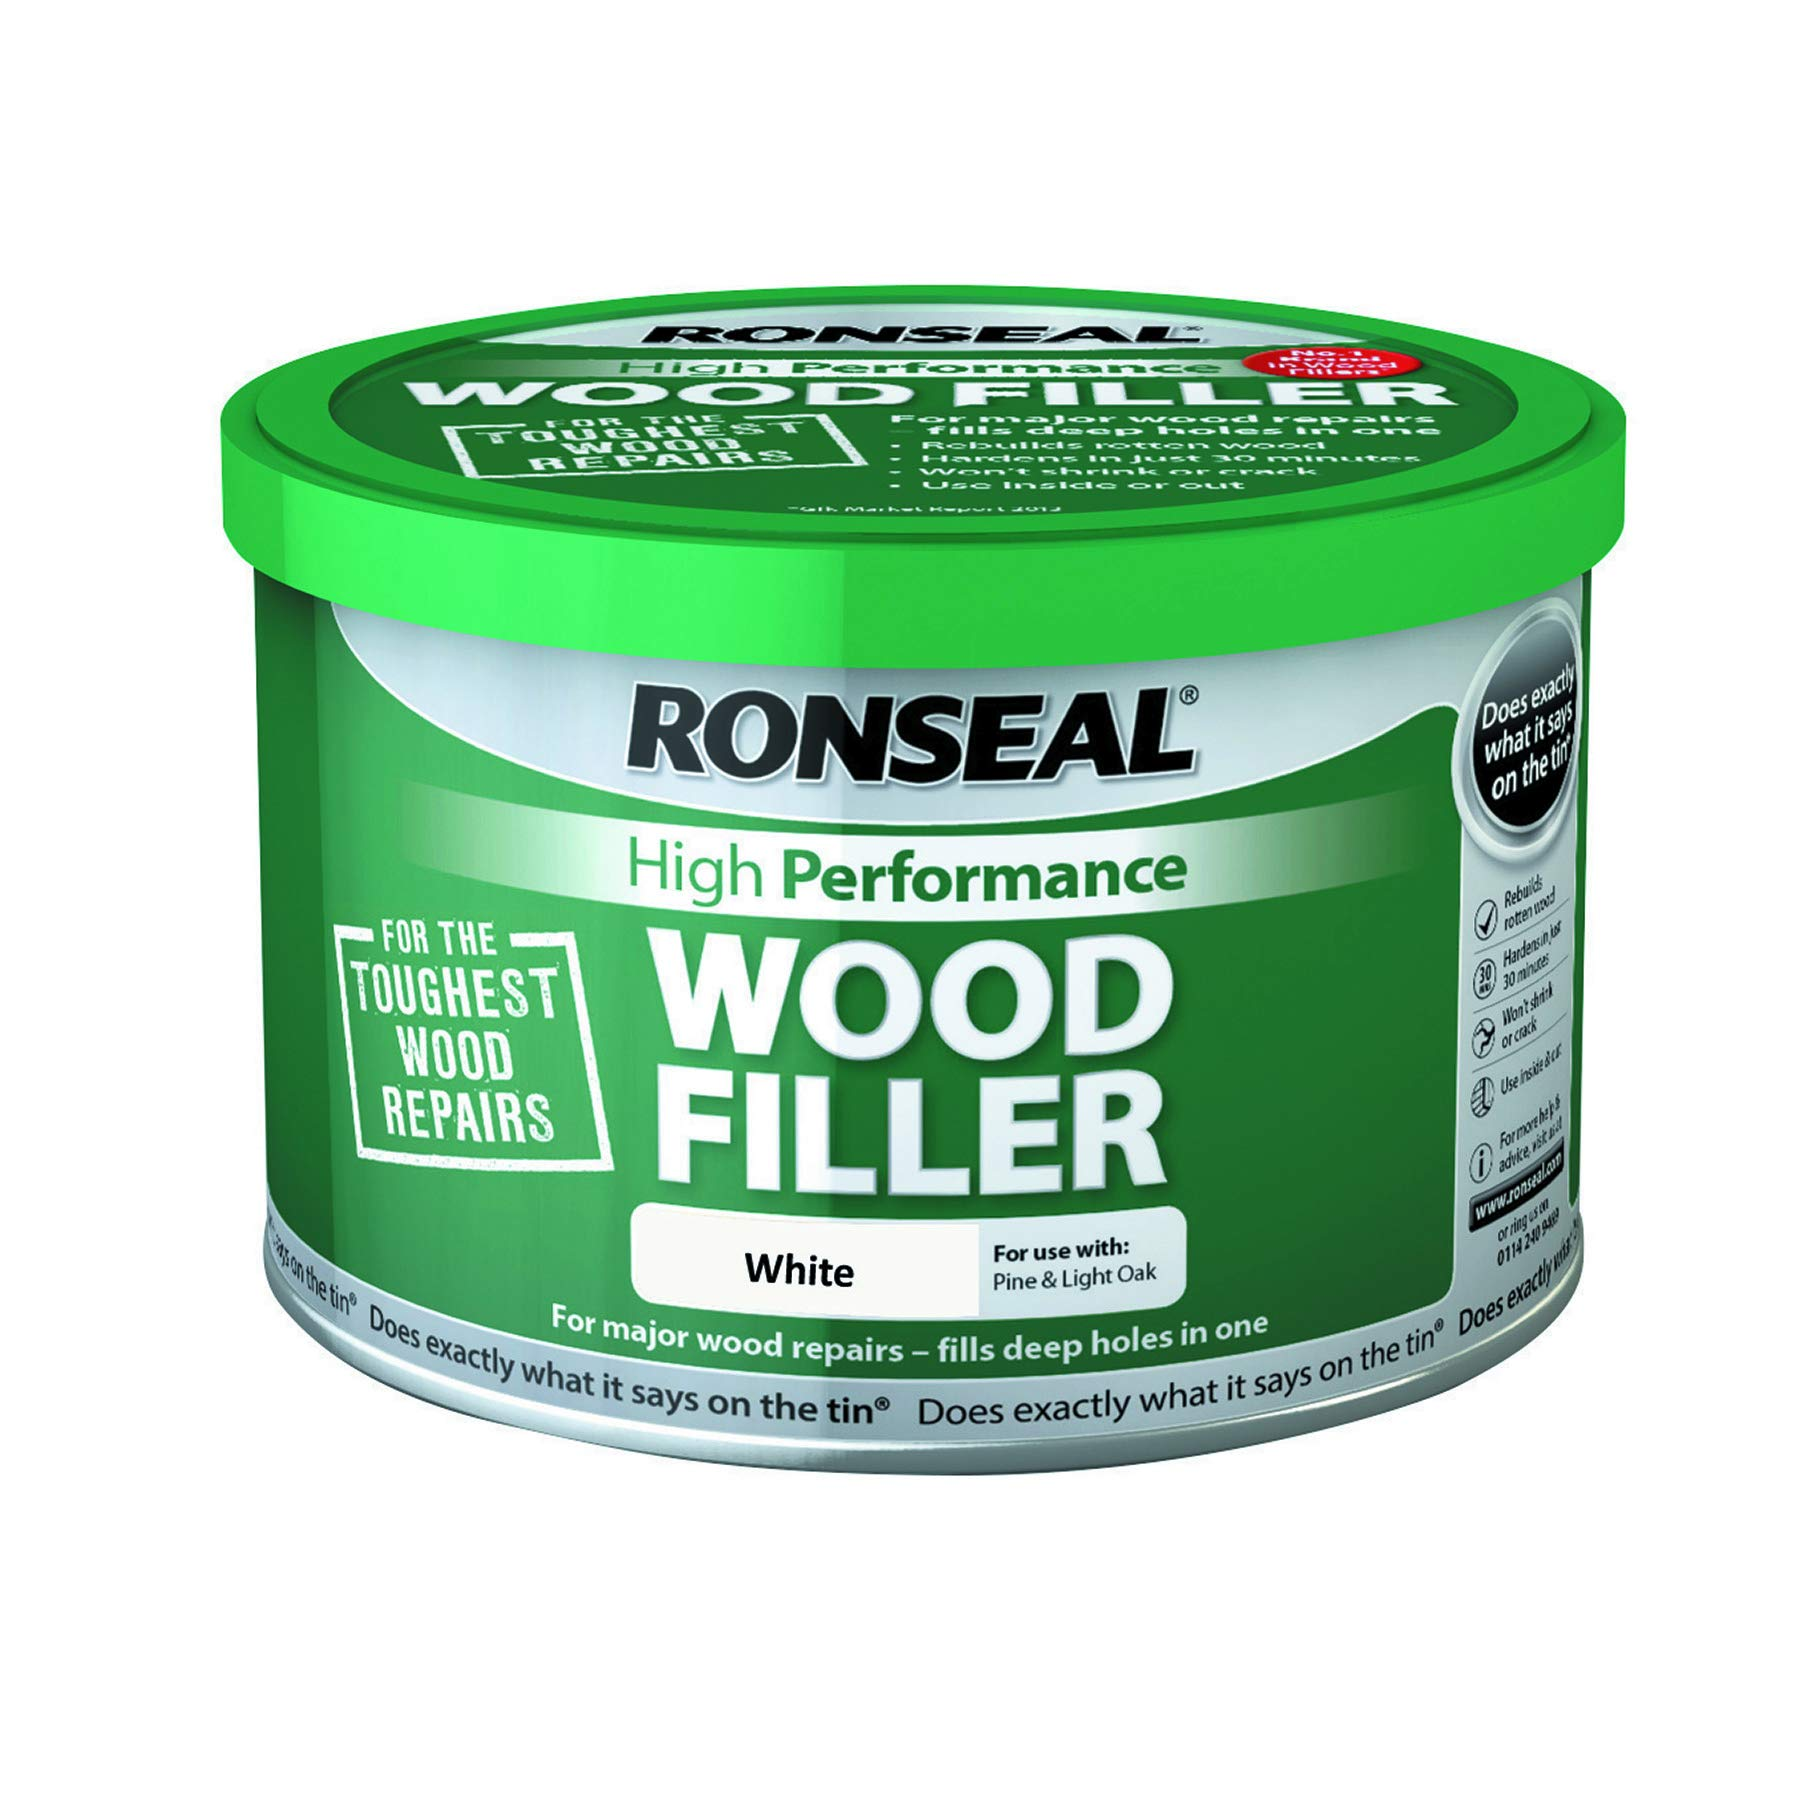 Ronseal Hpwfw275G 275G High Performance Wood Filler - White